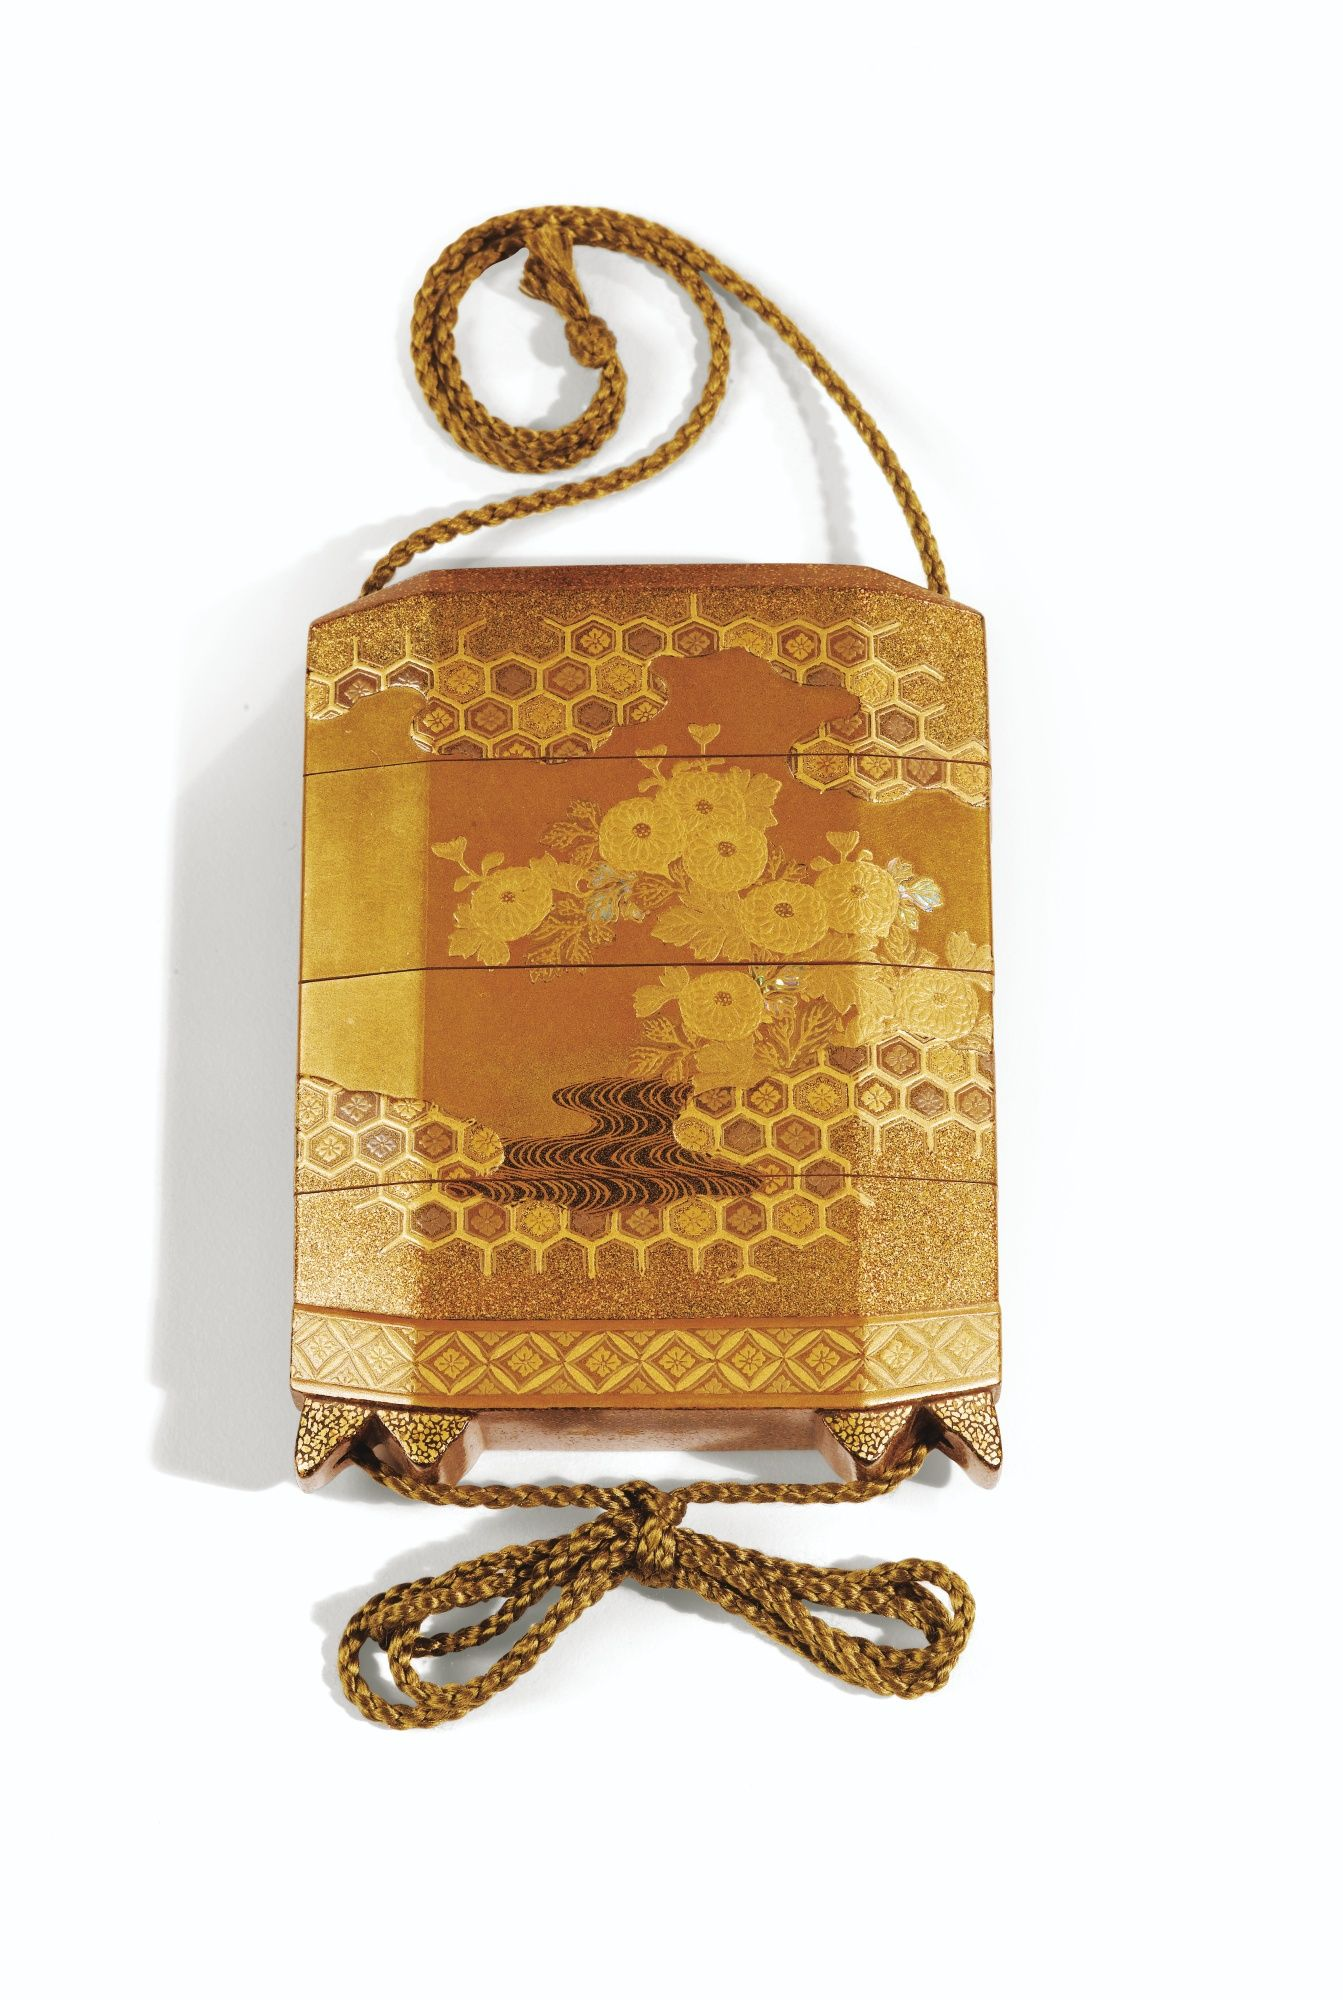 This would go well with the bee ring and earrings. A THREE-CASE GOLD-LACQUER INRO SIGNED YOYUSAI, JAPAN, CIRCA 1850